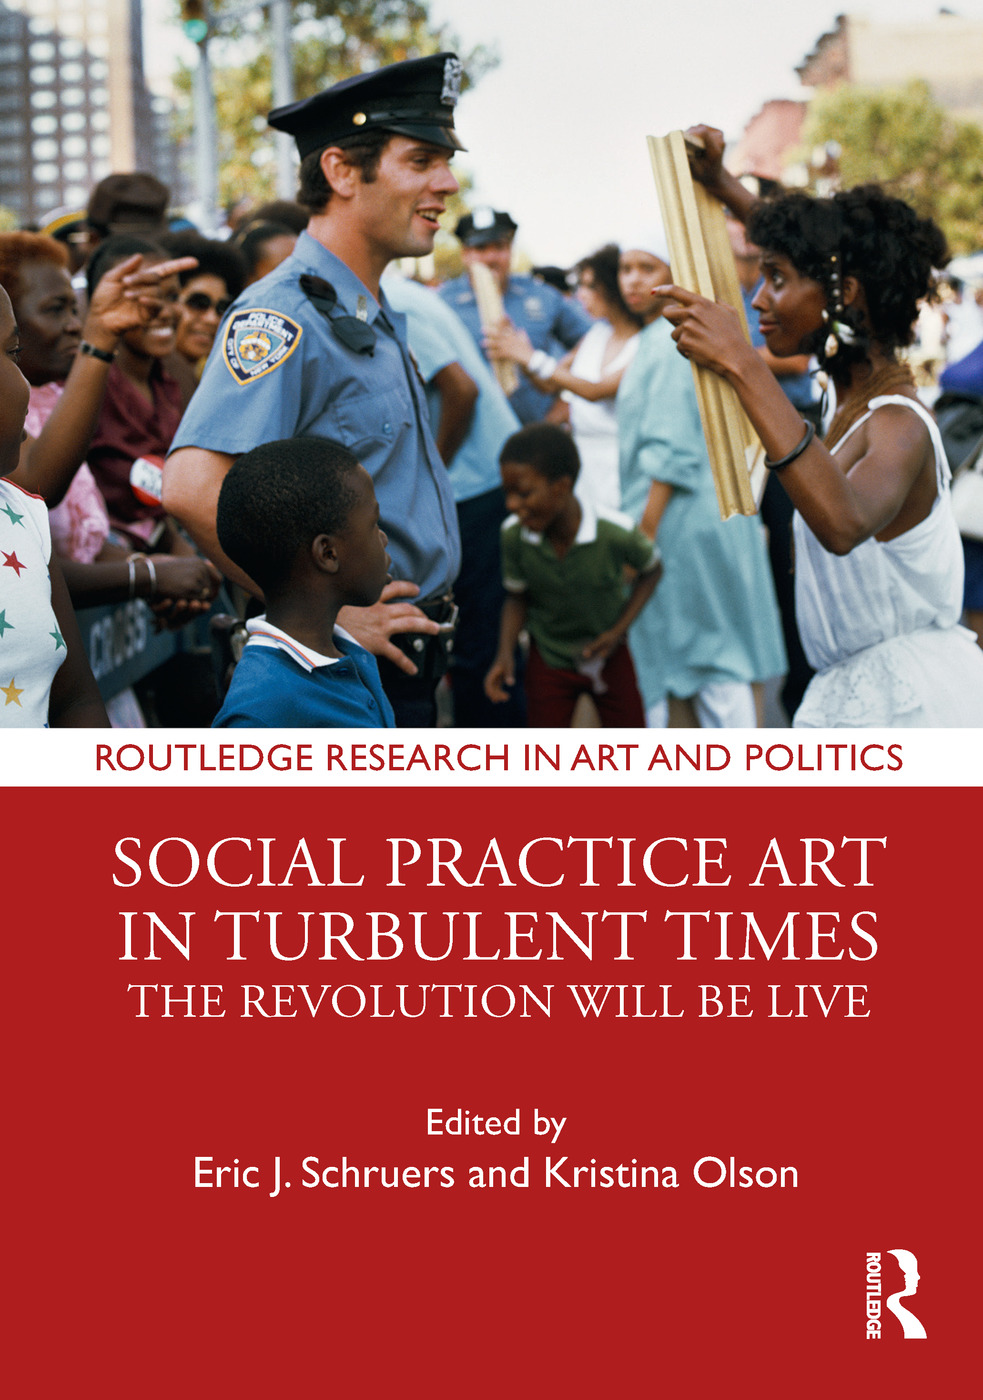 Social Practice Art in Turbulent Times: The Revolution Will Be Live book cover